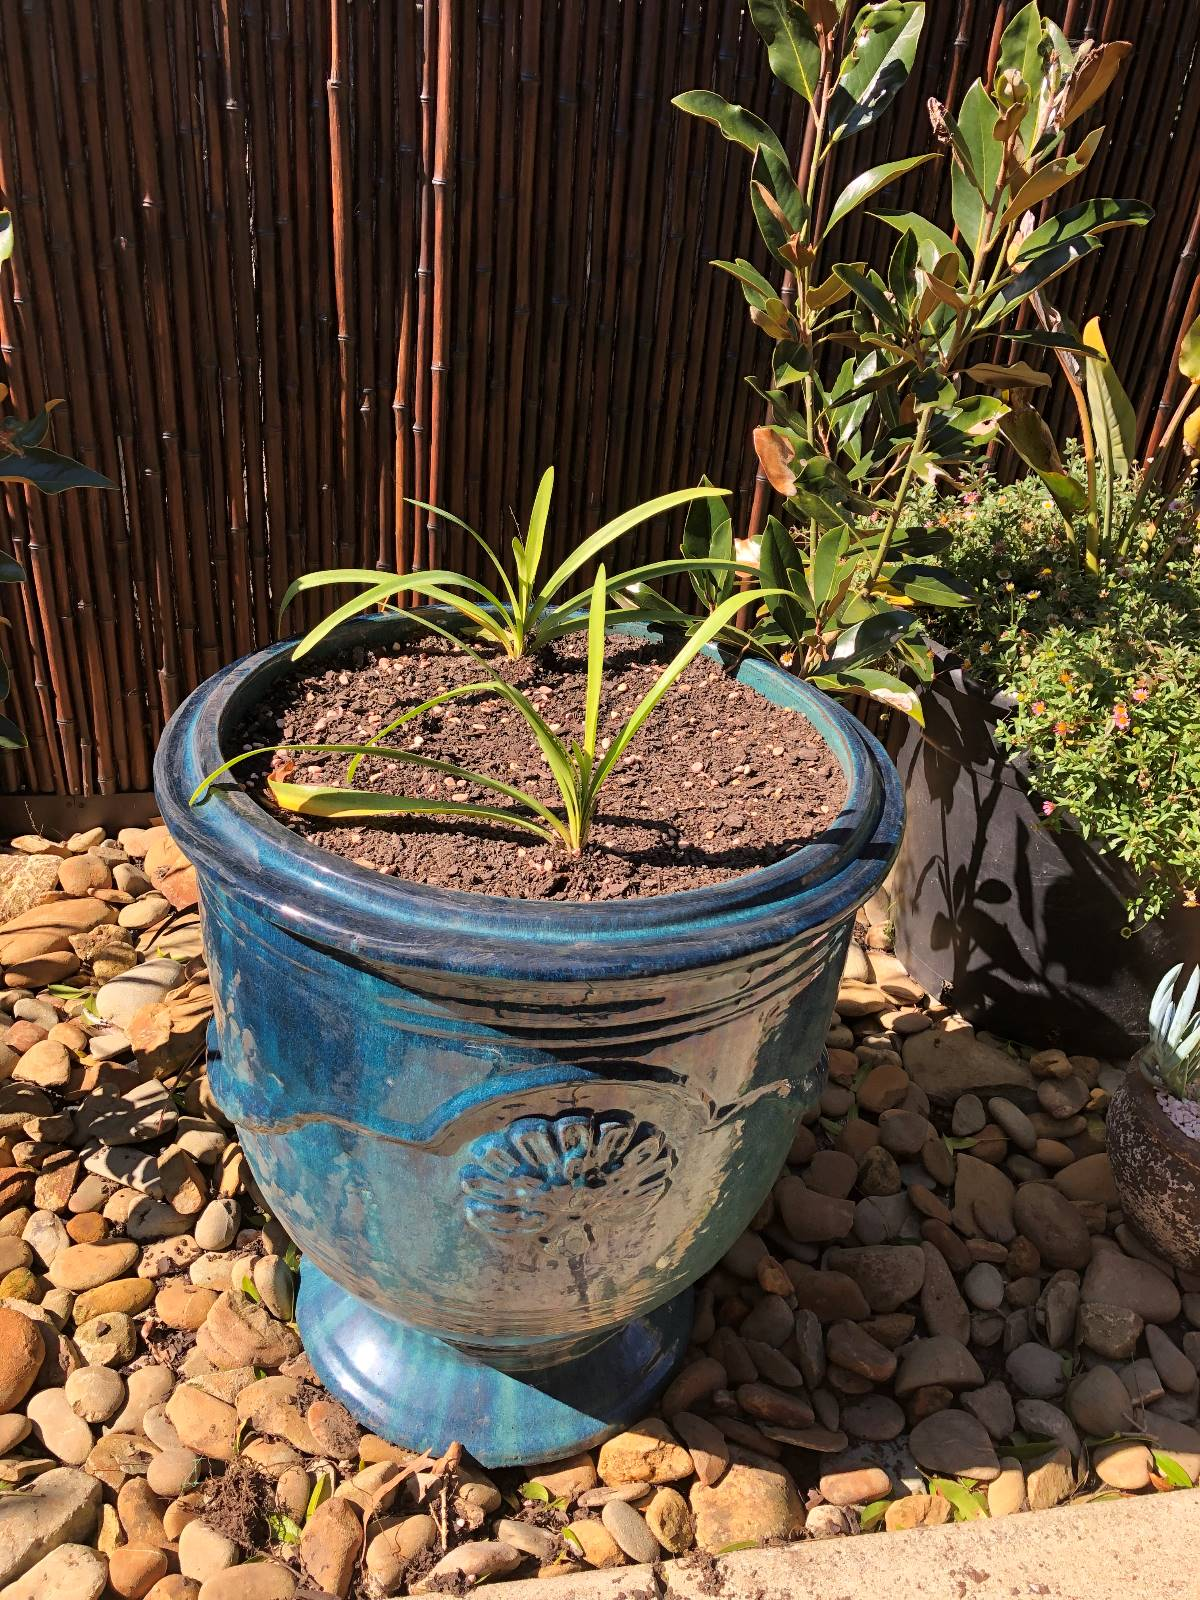 What plant would grow well with agapanthus